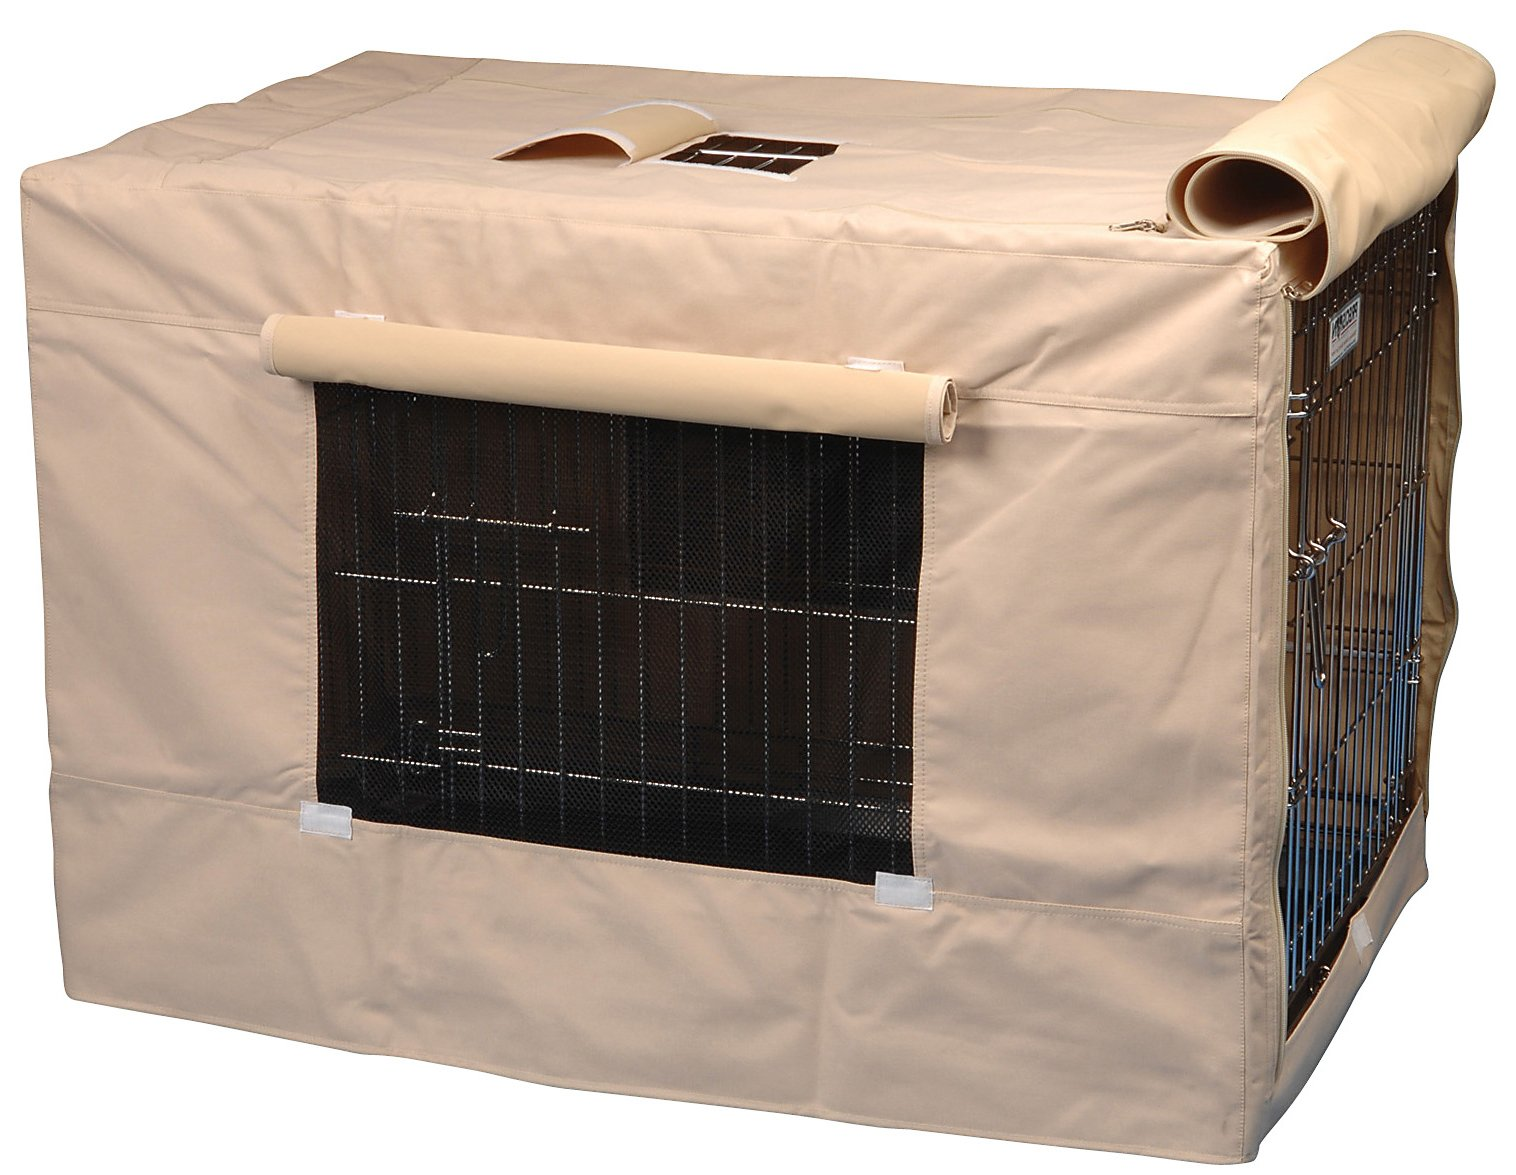 pet crate covers fabrics color and design selections  homesfeed - light brown fabric cover for dog crate